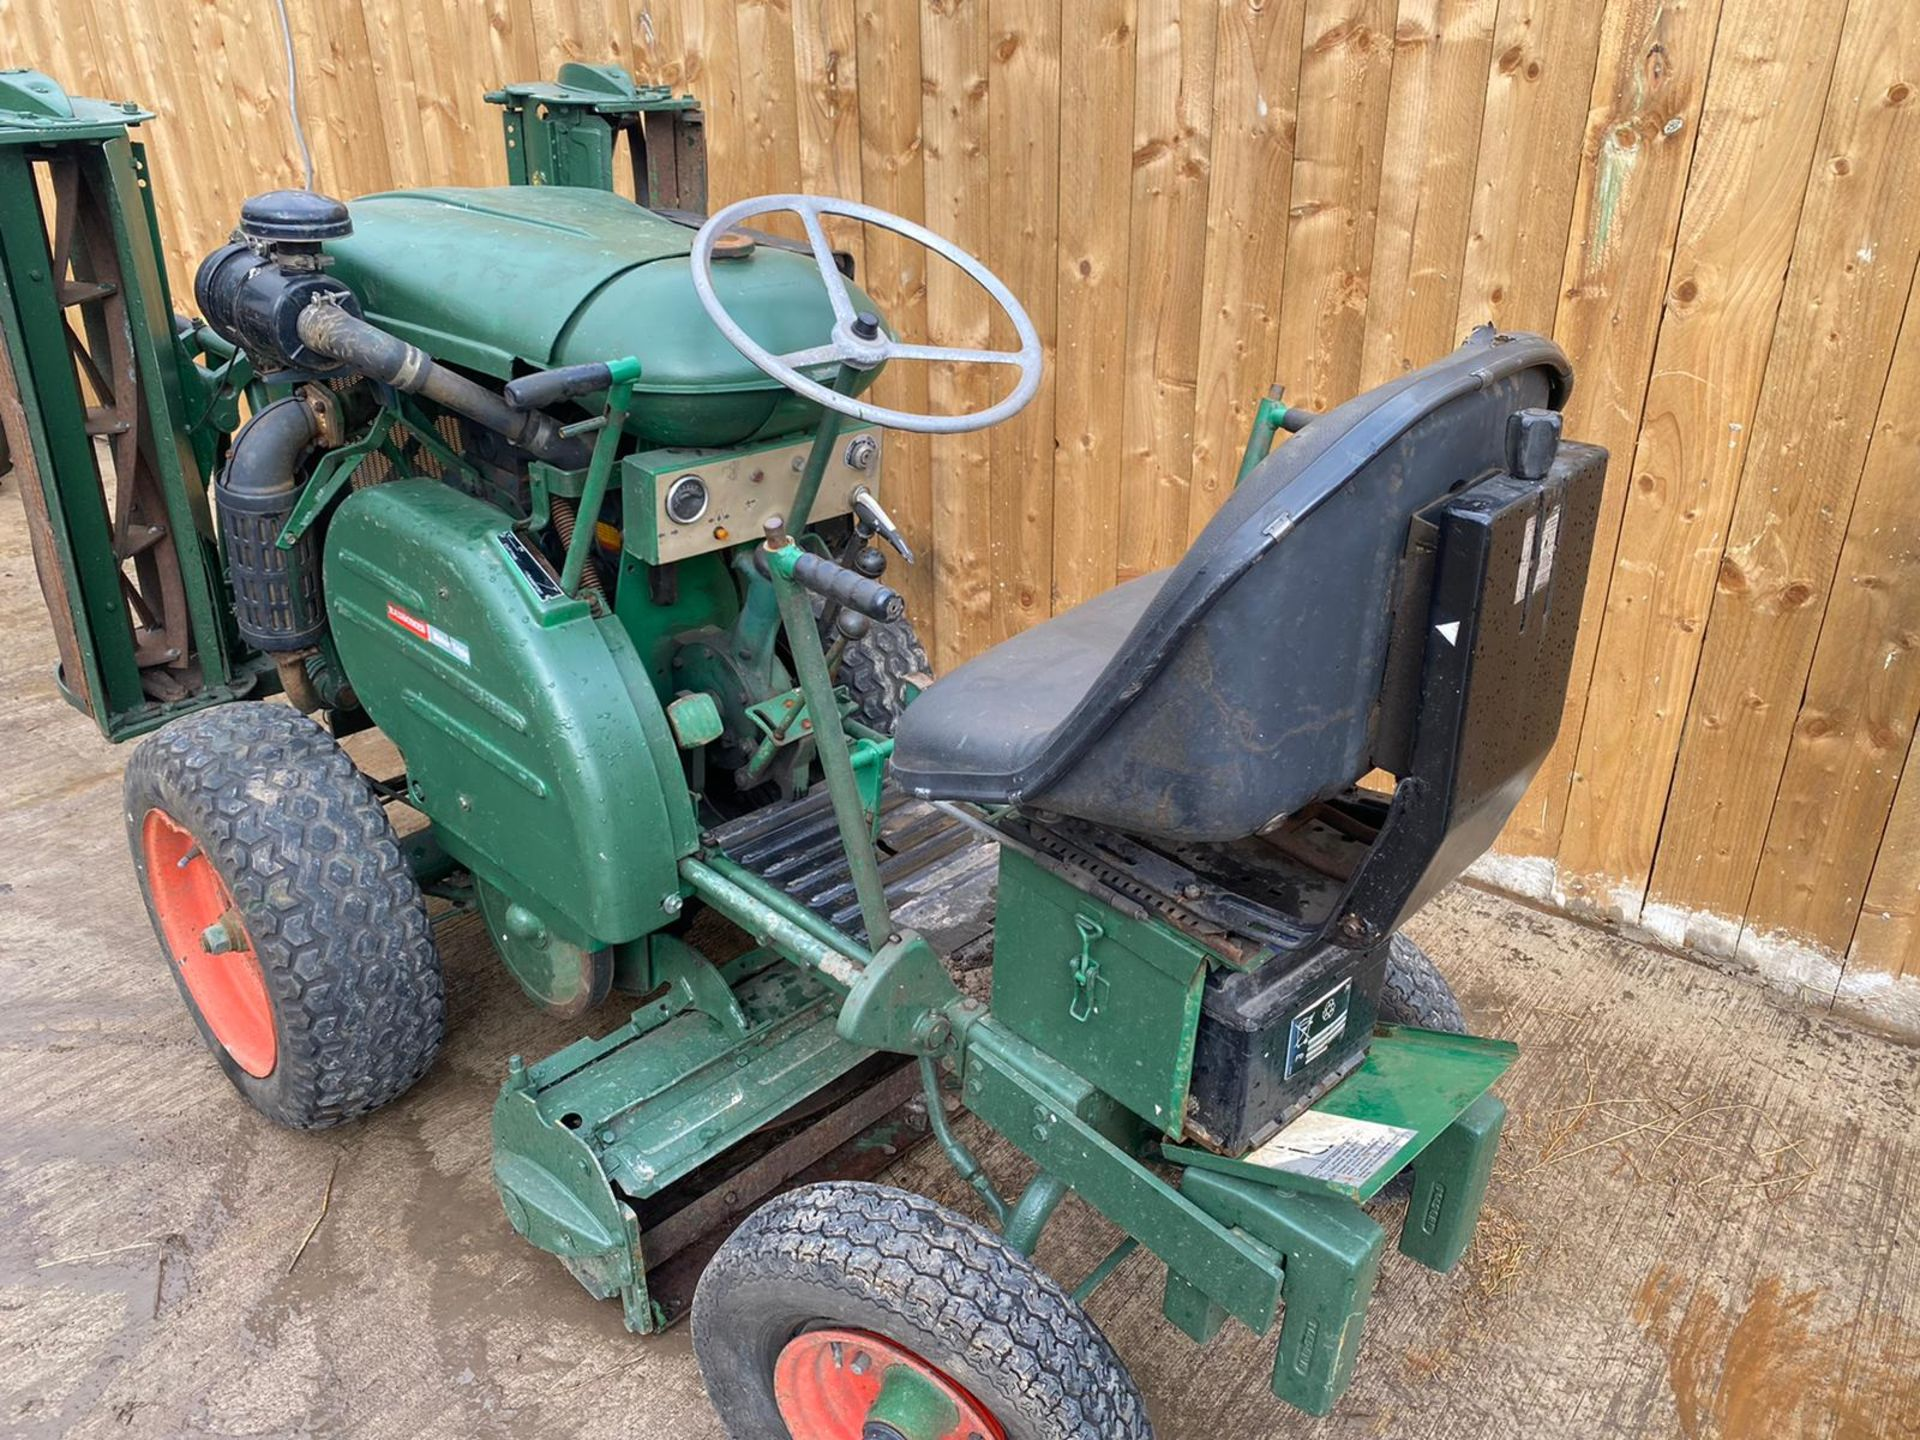 RANSOMES MOTOR TRIPLE DIESEL MOWER, KUBOTA DIESEL ENGINE, STARTS, FIRST TIME, RUNS, DRIVES, CUTS - Image 2 of 5